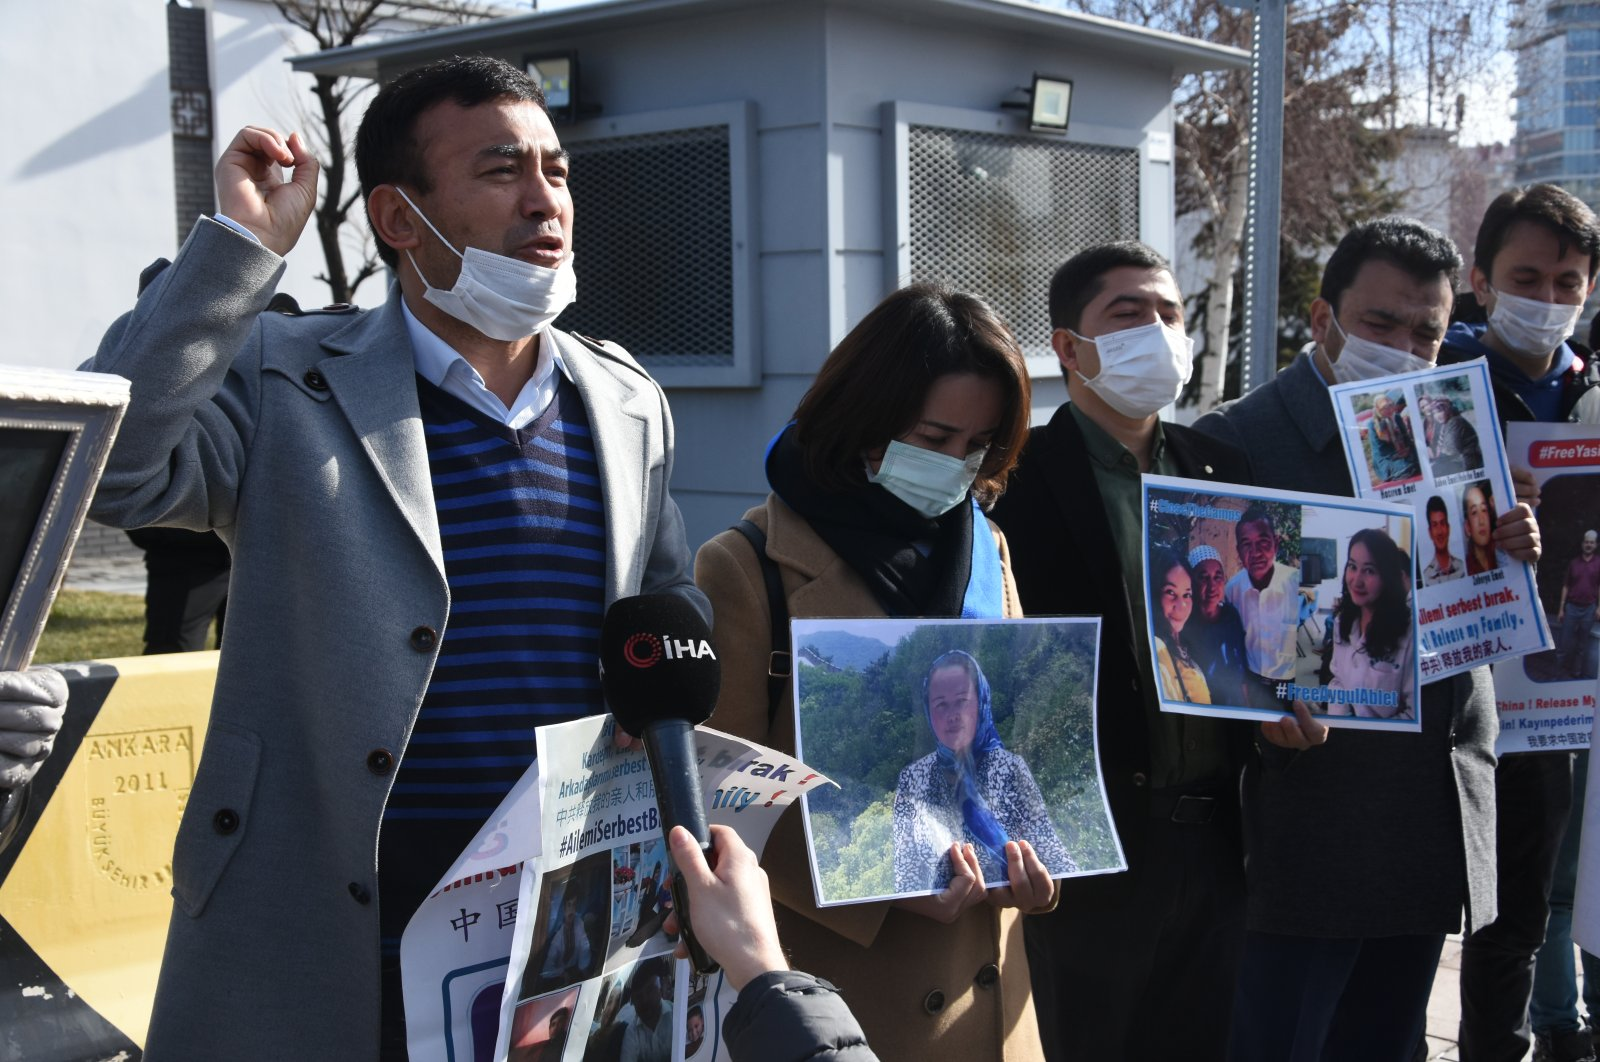 A group of Uighurs protest in front of the Chinese embassy asking for their missing relatives, Istanbul, on Feb. 3, 2021. (AA Photo)